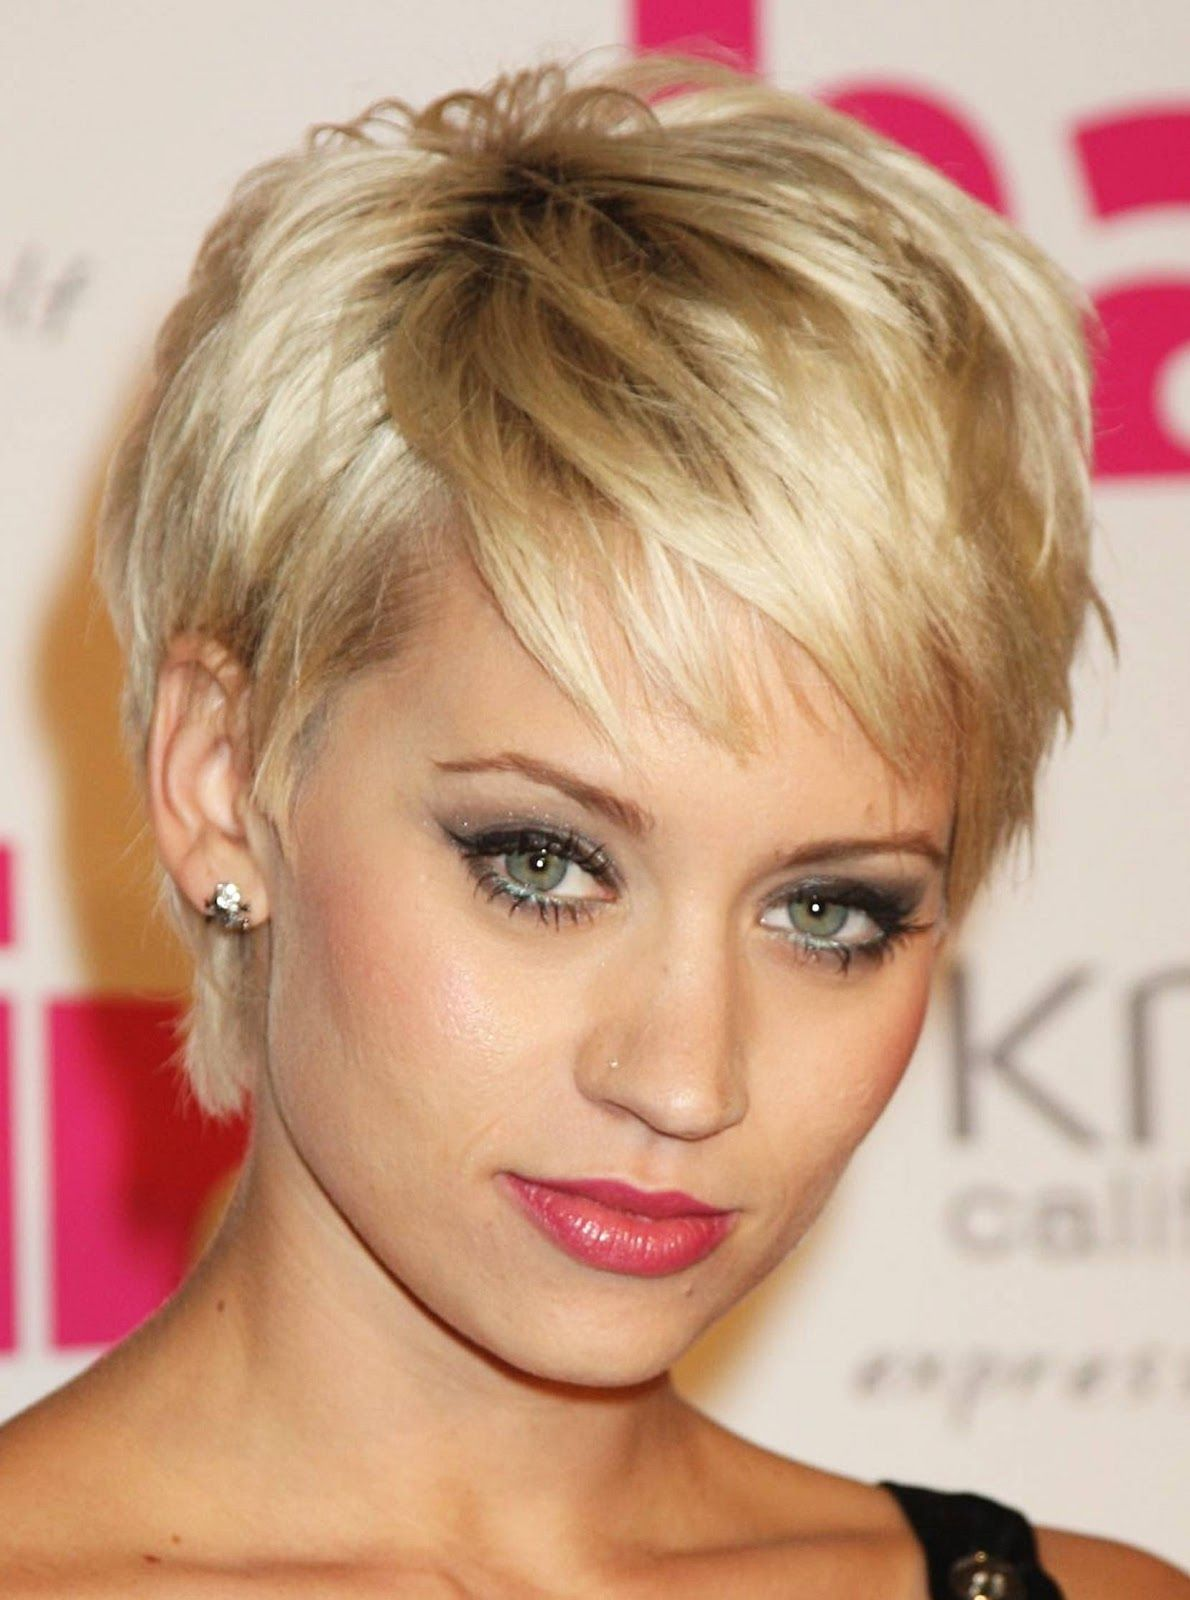 Pleasing Nice Photos Of And A Medium On Pinterest Hairstyles For Women Draintrainus